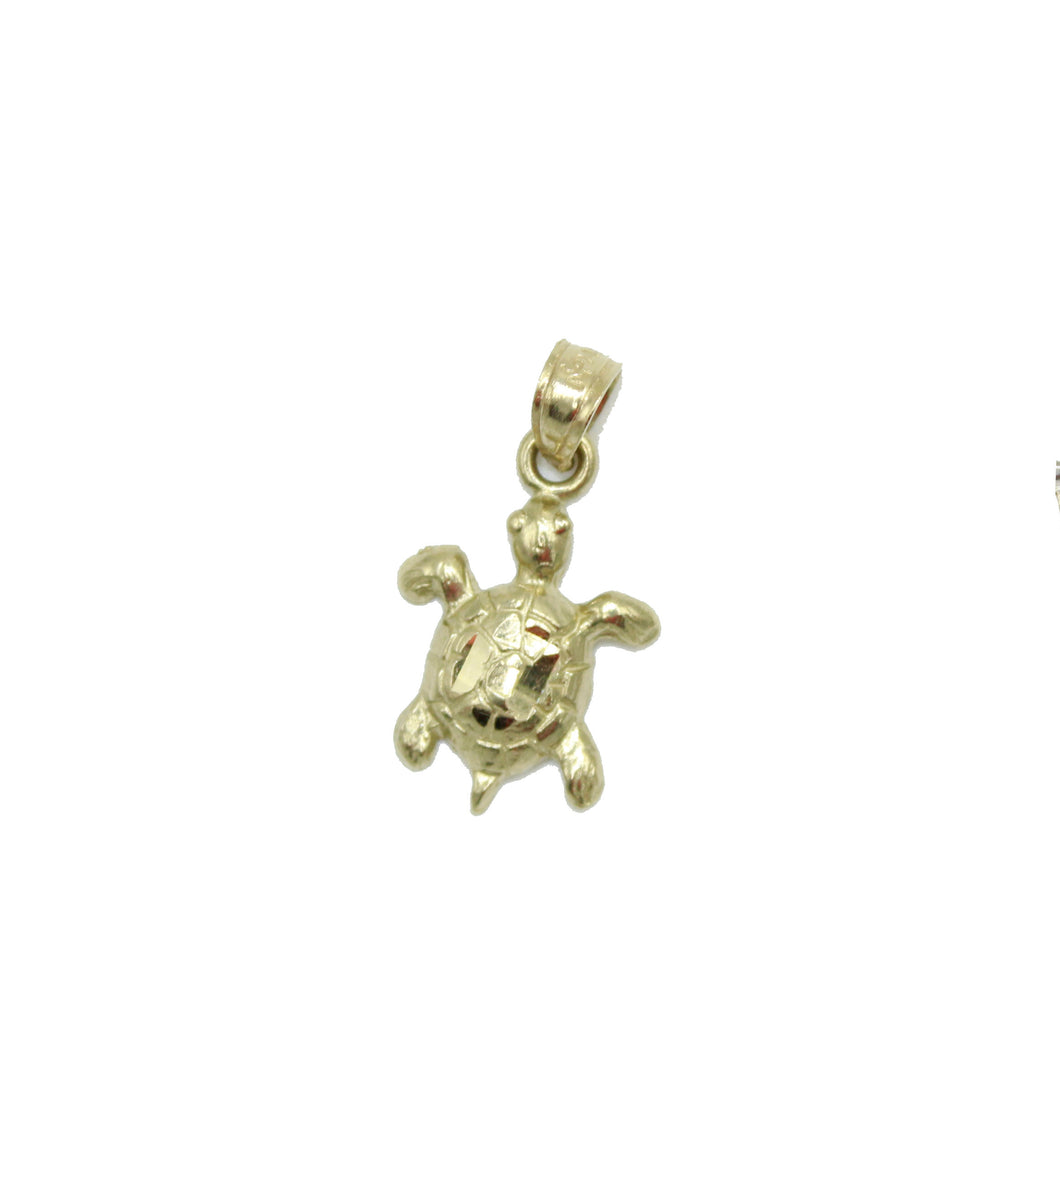 Turtle Pendant 14k Yellow Gold - Turtle Charm Pendant 14k Yellow Gold